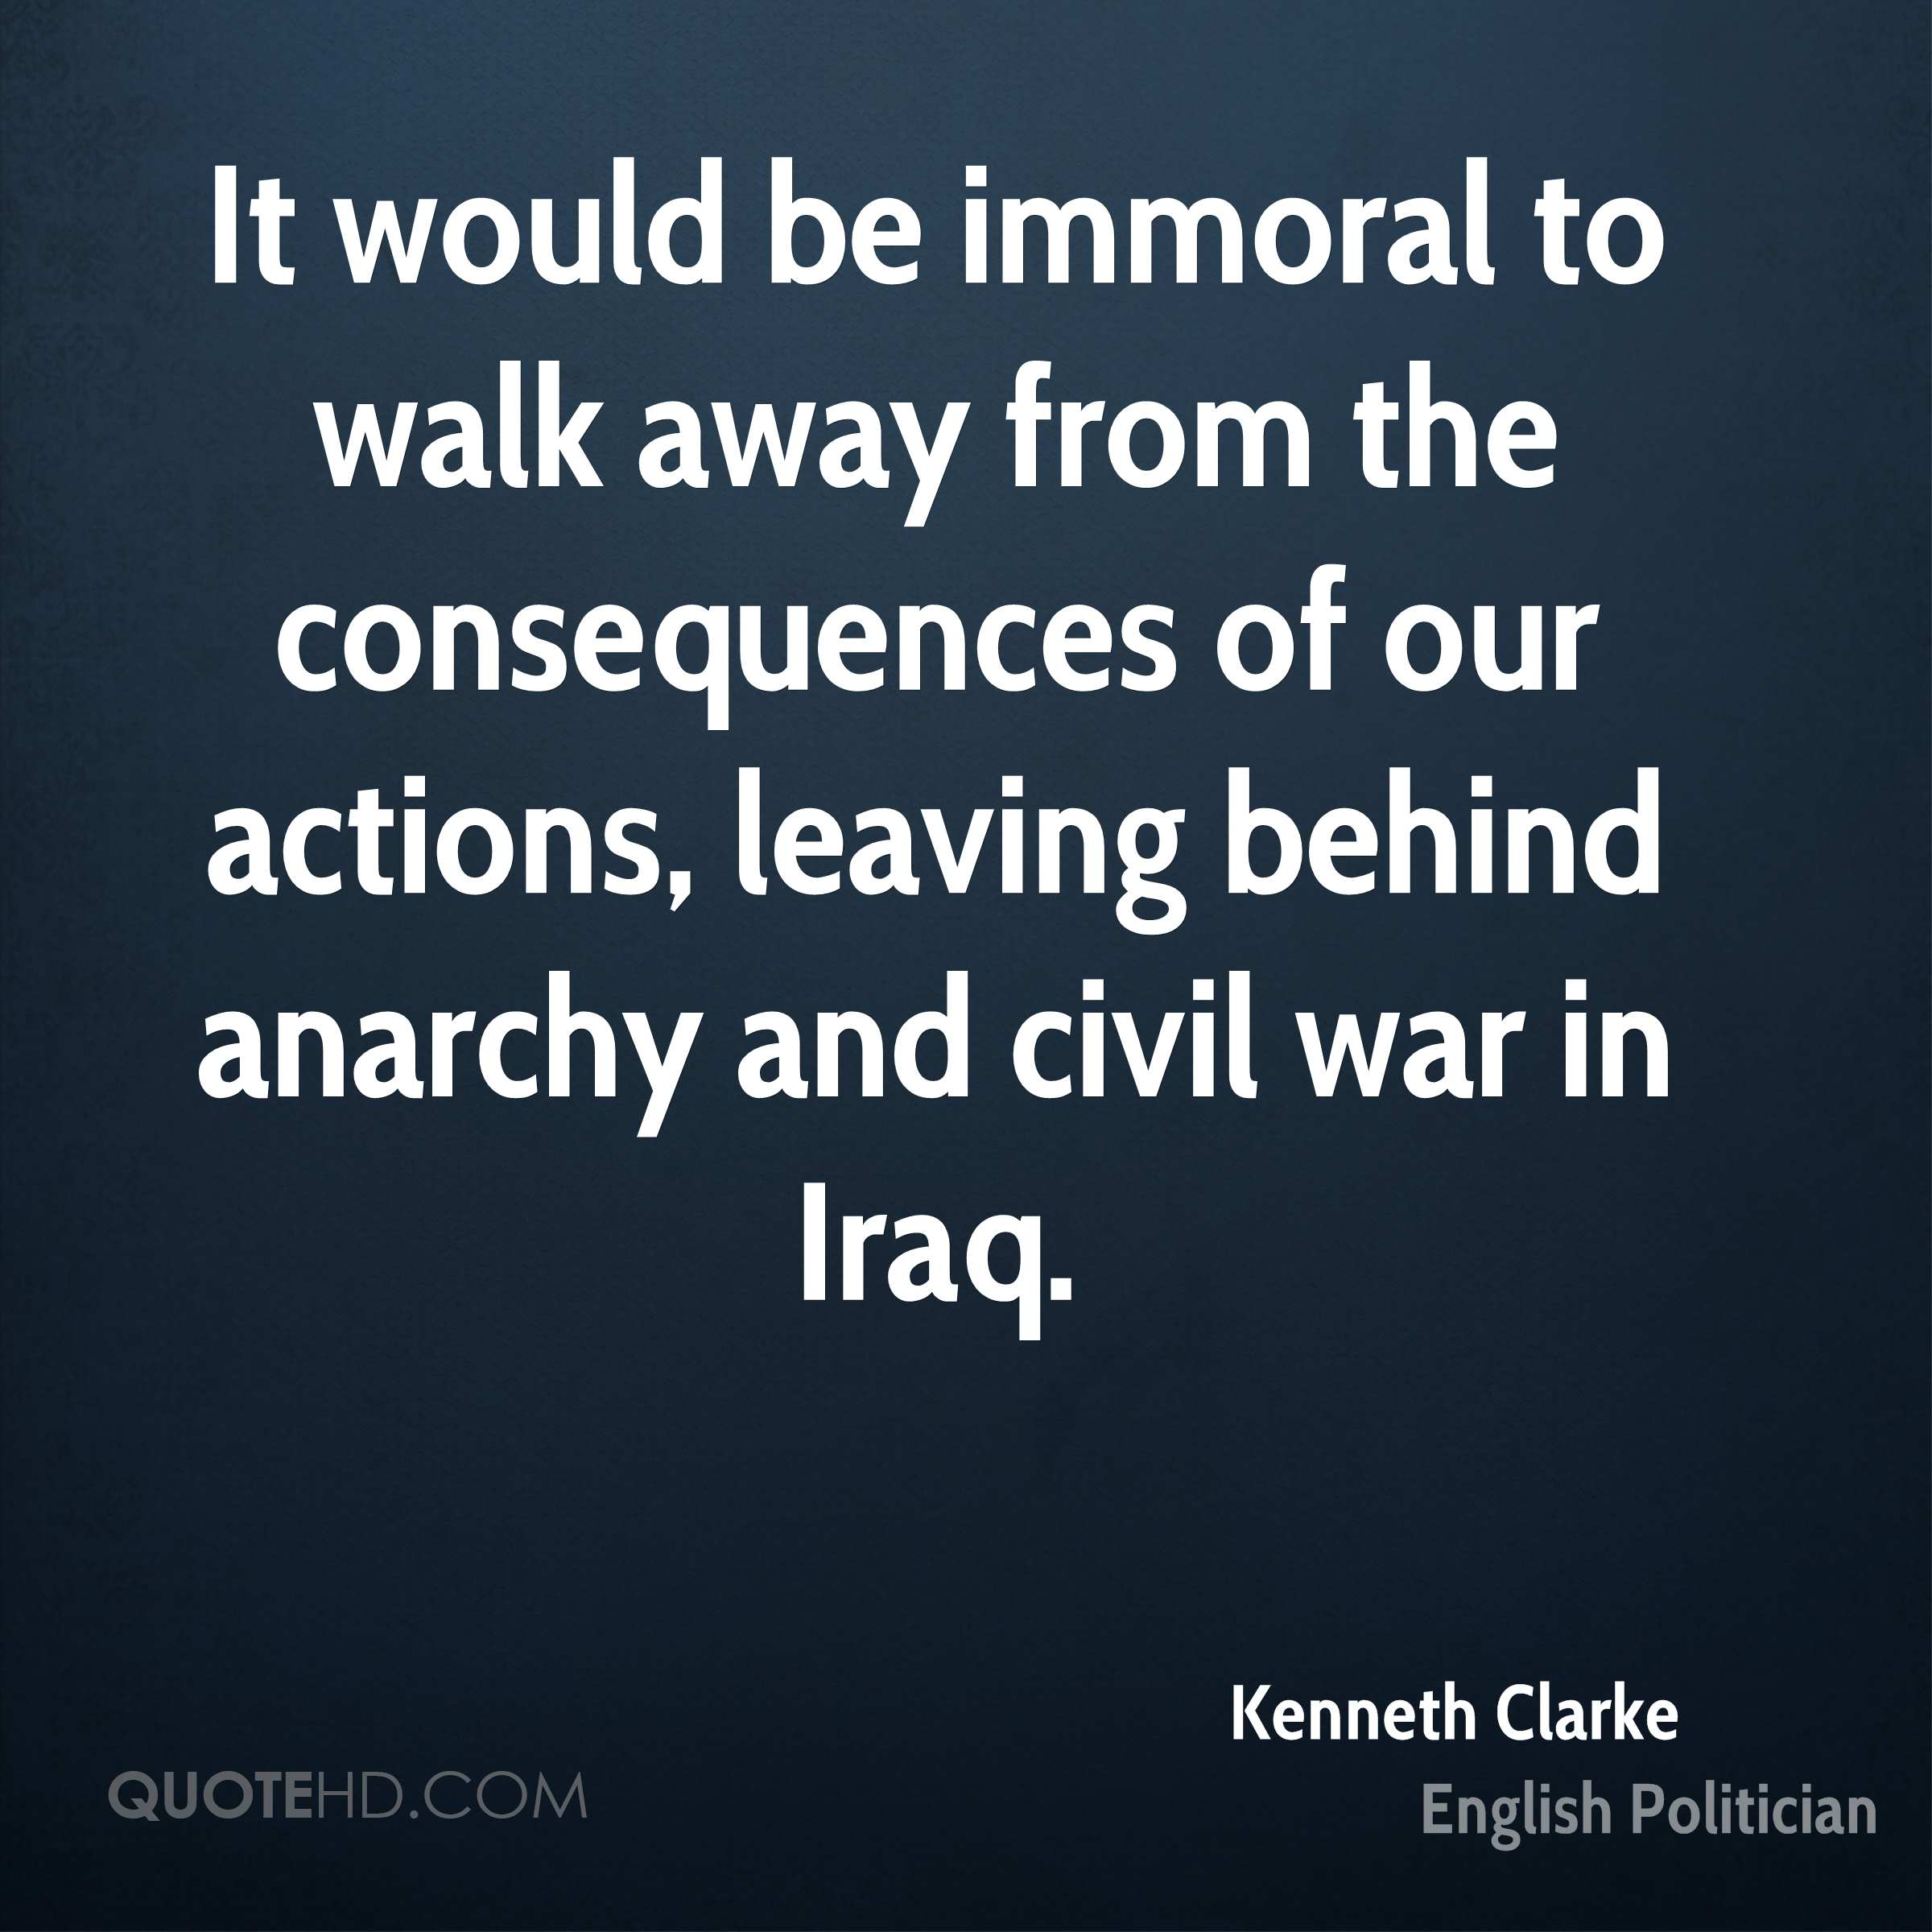 It would be immoral to walk away from the consequences of our actions, leaving behind anarchy and civil war in Iraq.